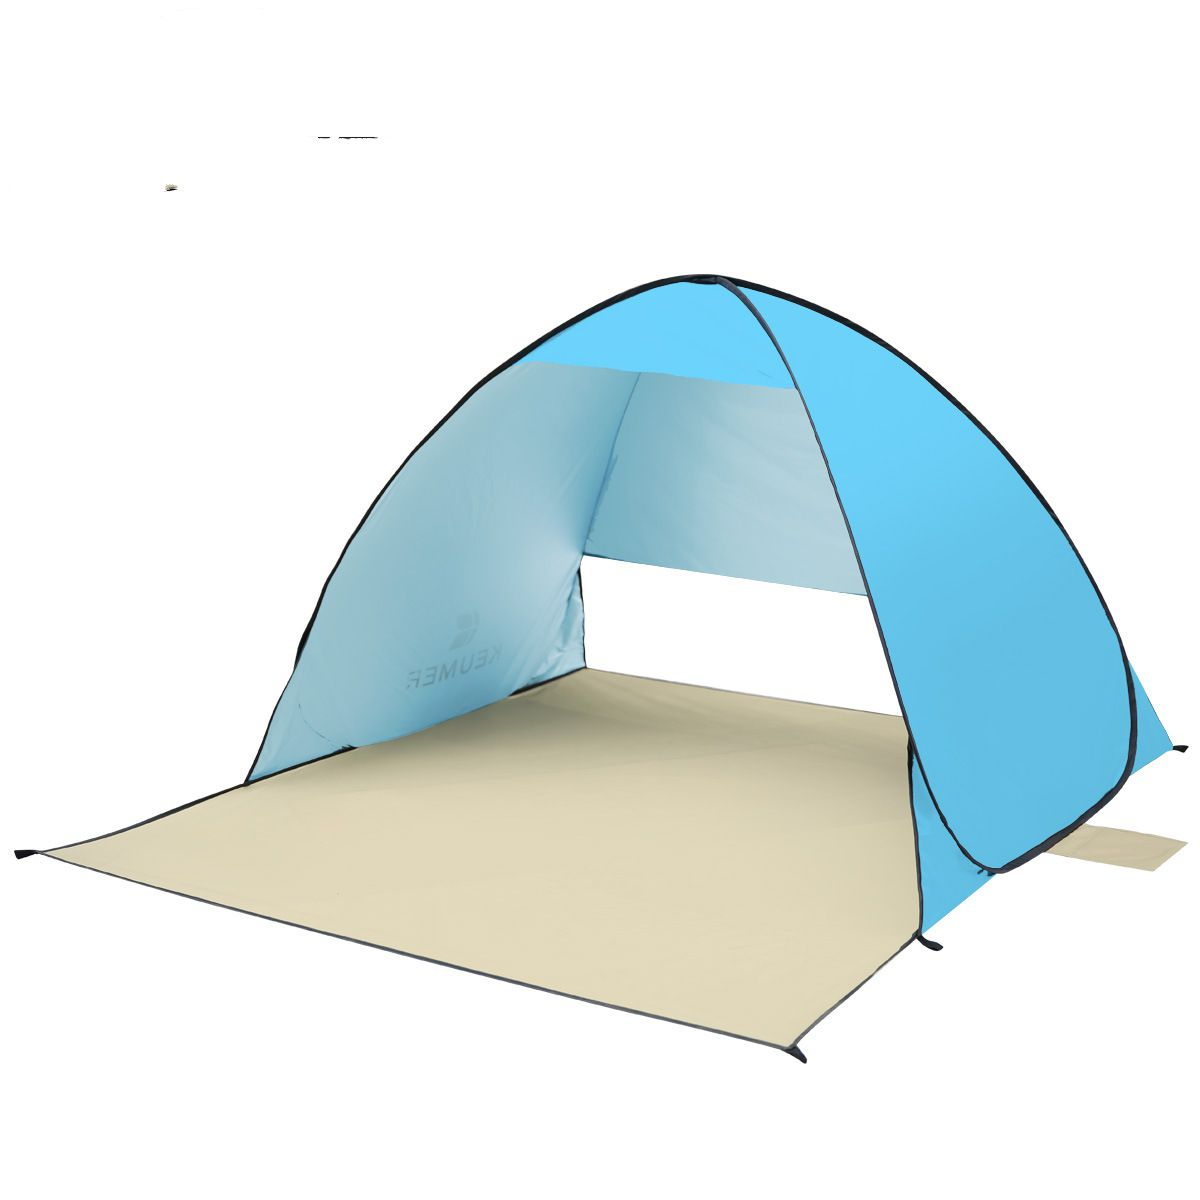 Camping tent, Beach Shelter, Beach Tent, Fishing Tent